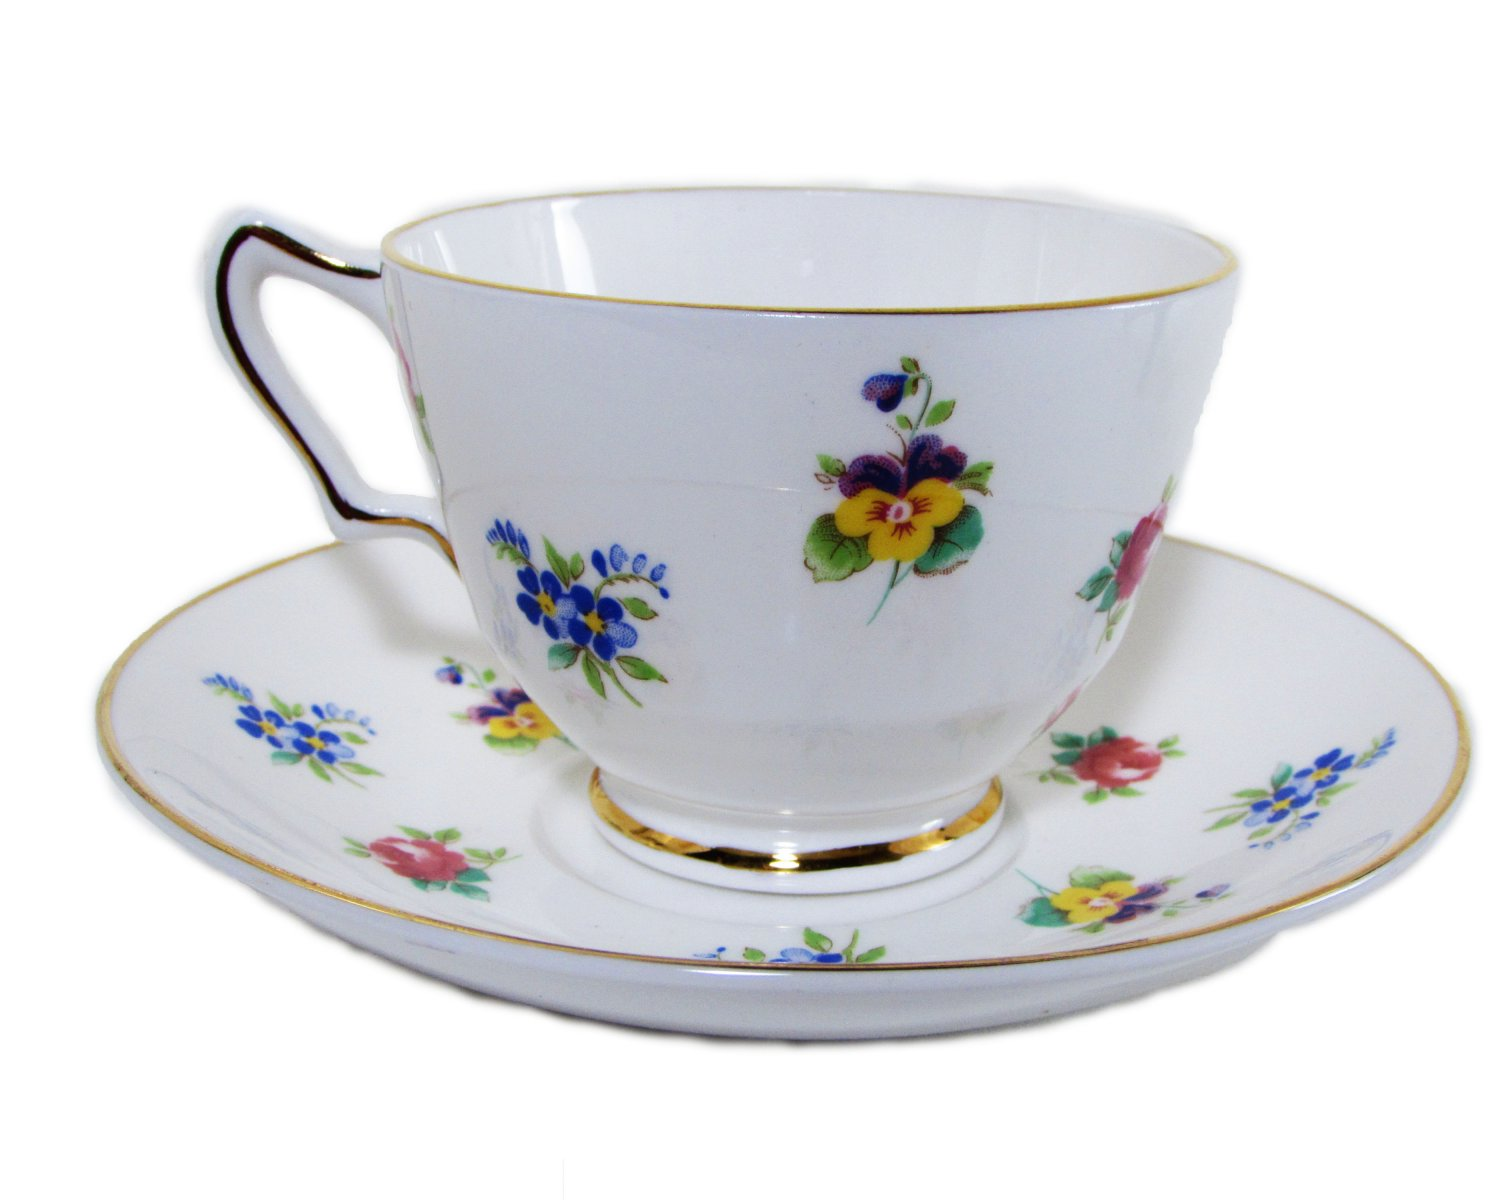 Floral Crown Staffordshire Footed Cup and Saucer Fine Bone China Pansy, Rose, Forget-me-not